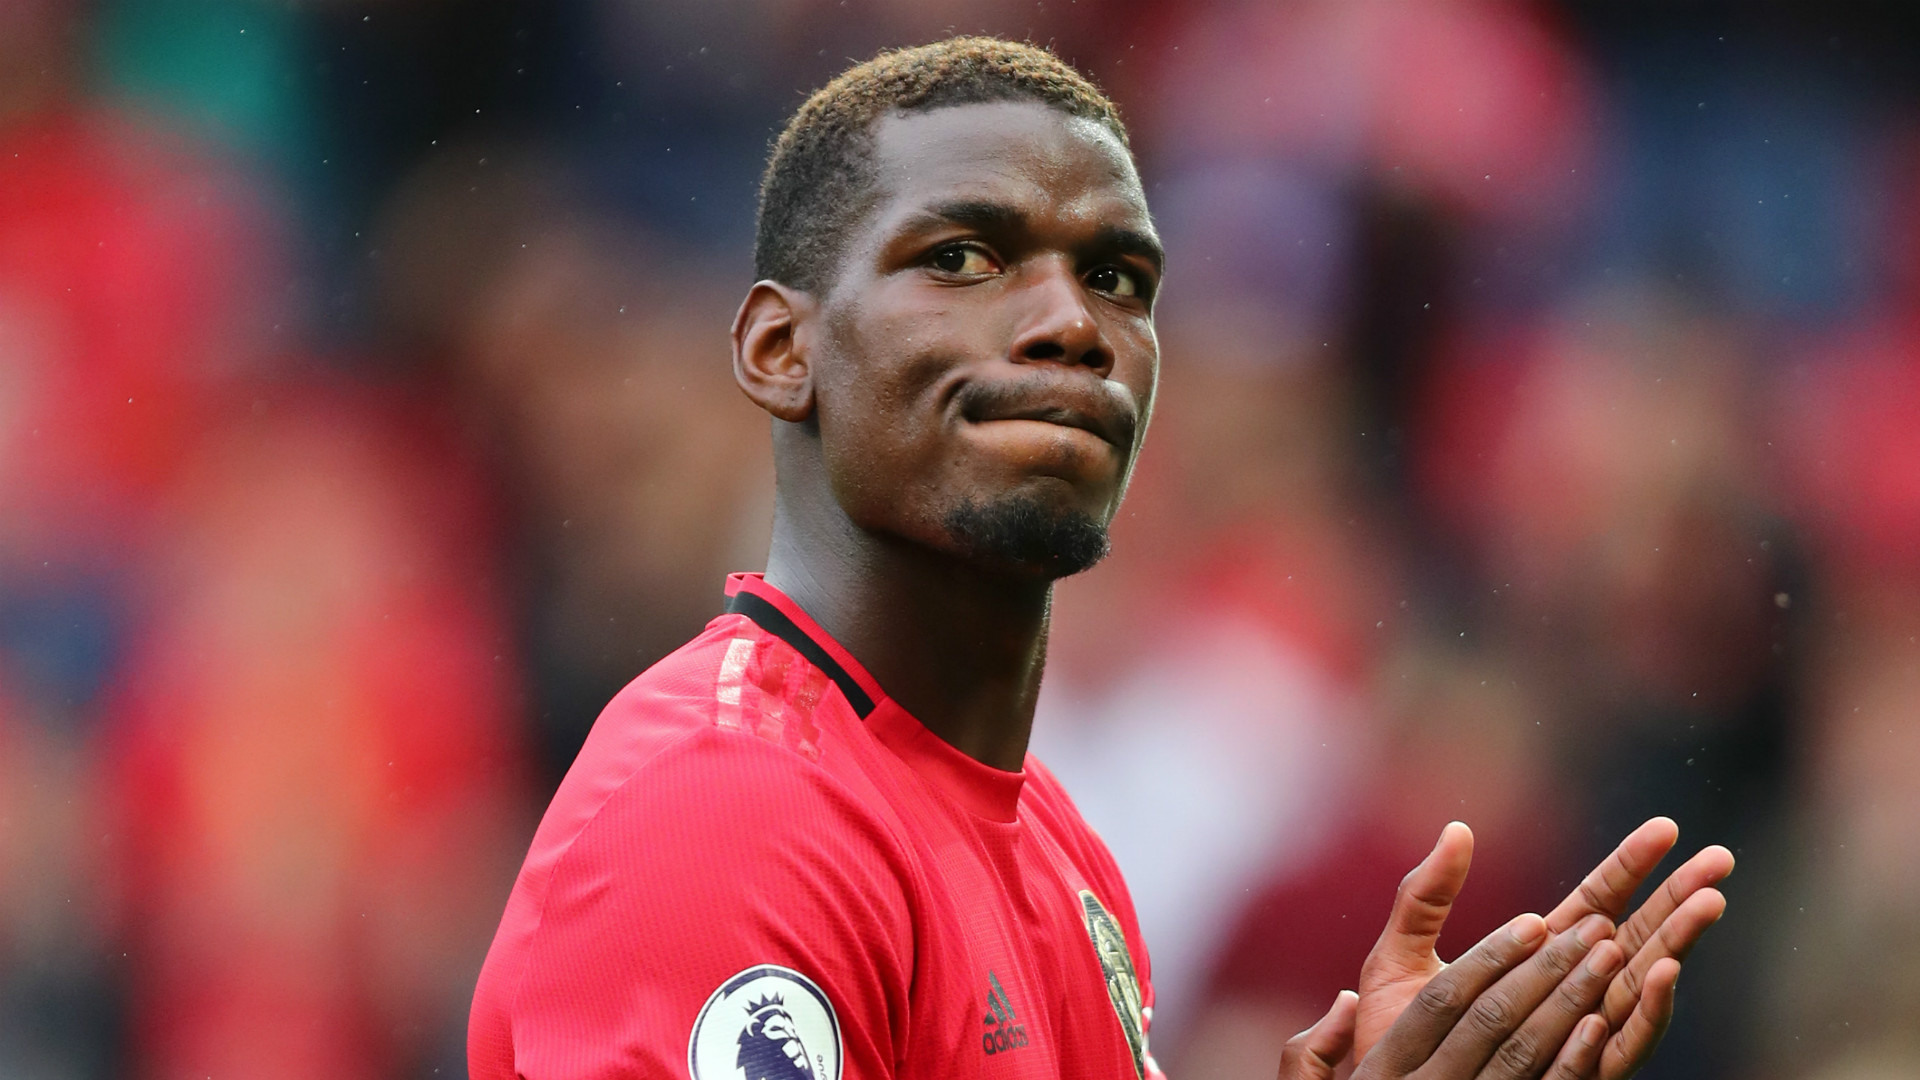 'Pogba can have positive impact for Man Utd' – O'Shea looking forward to seeing 'decent fella' back